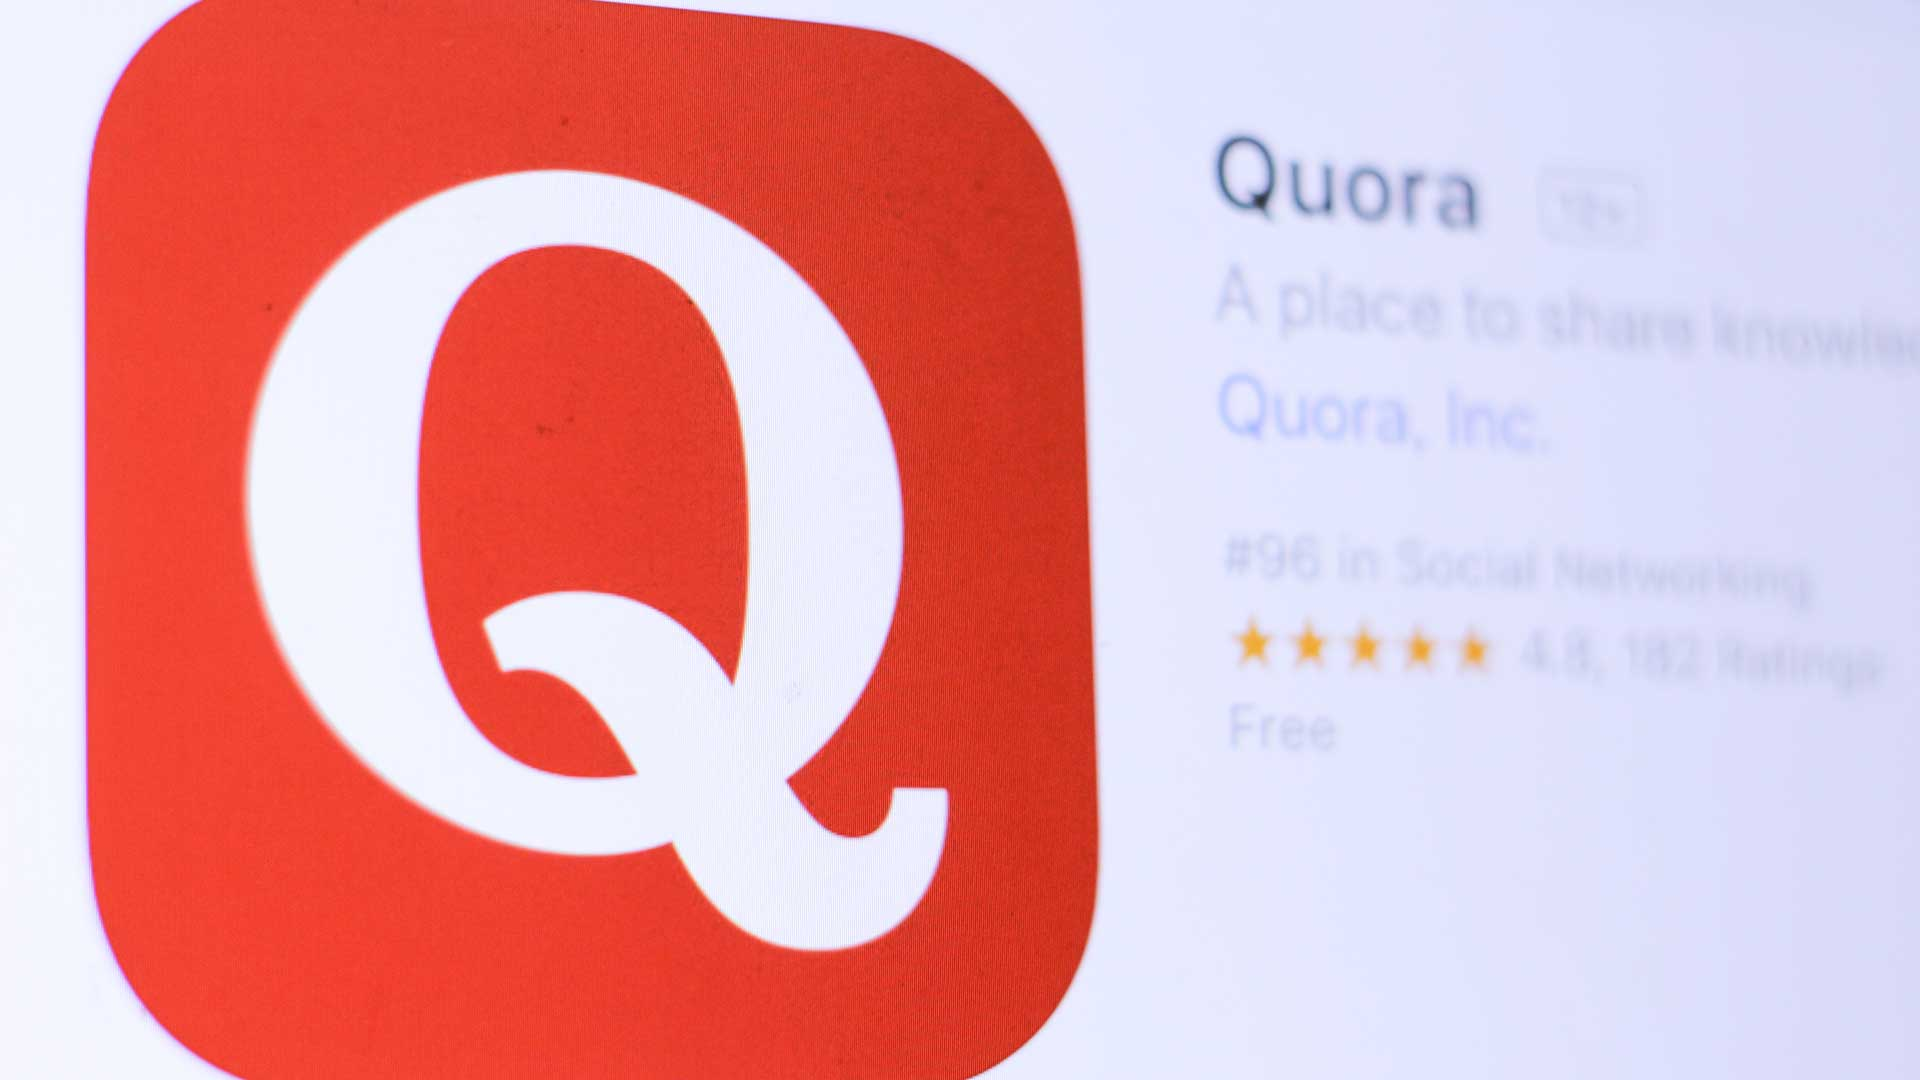 PPC - Quora adds 3 new targeting options for advertisers